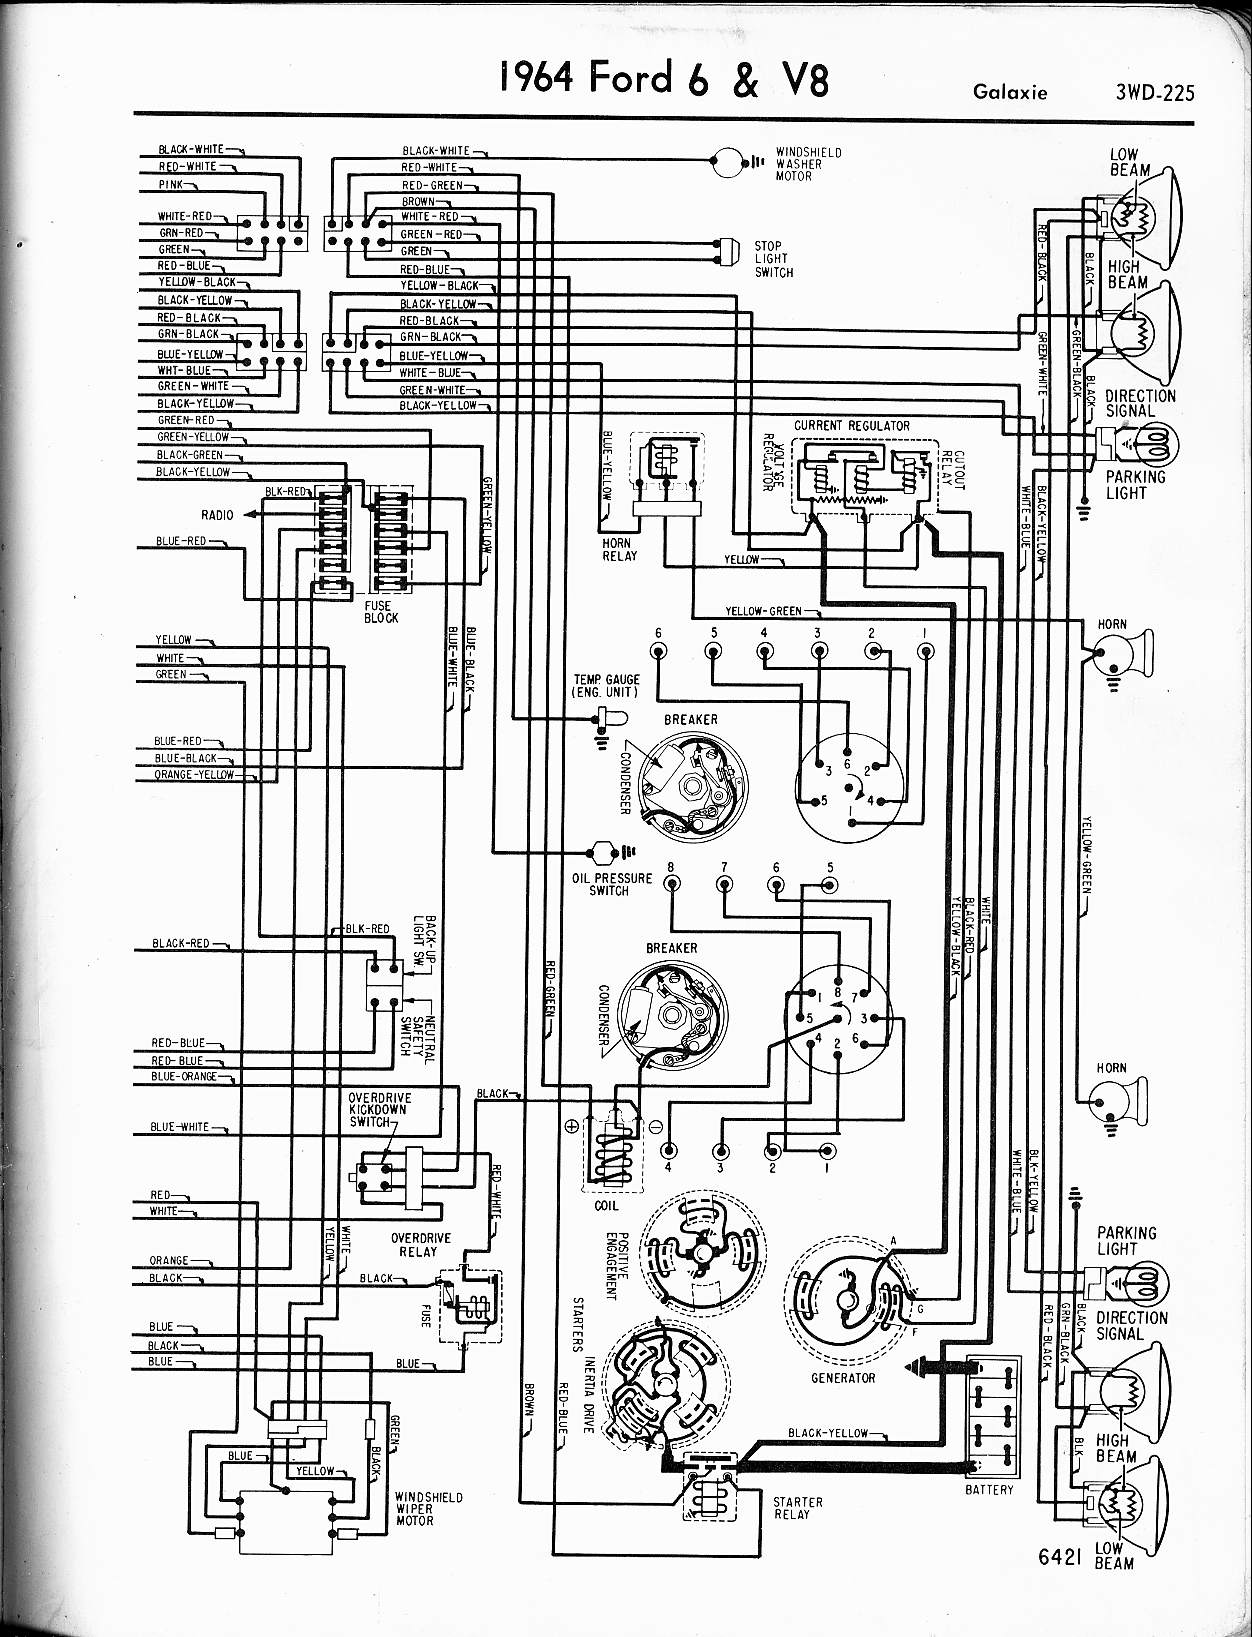 MWire5765 225 57 65 ford wiring diagrams 1964 ford falcon wiring diagram at fashall.co